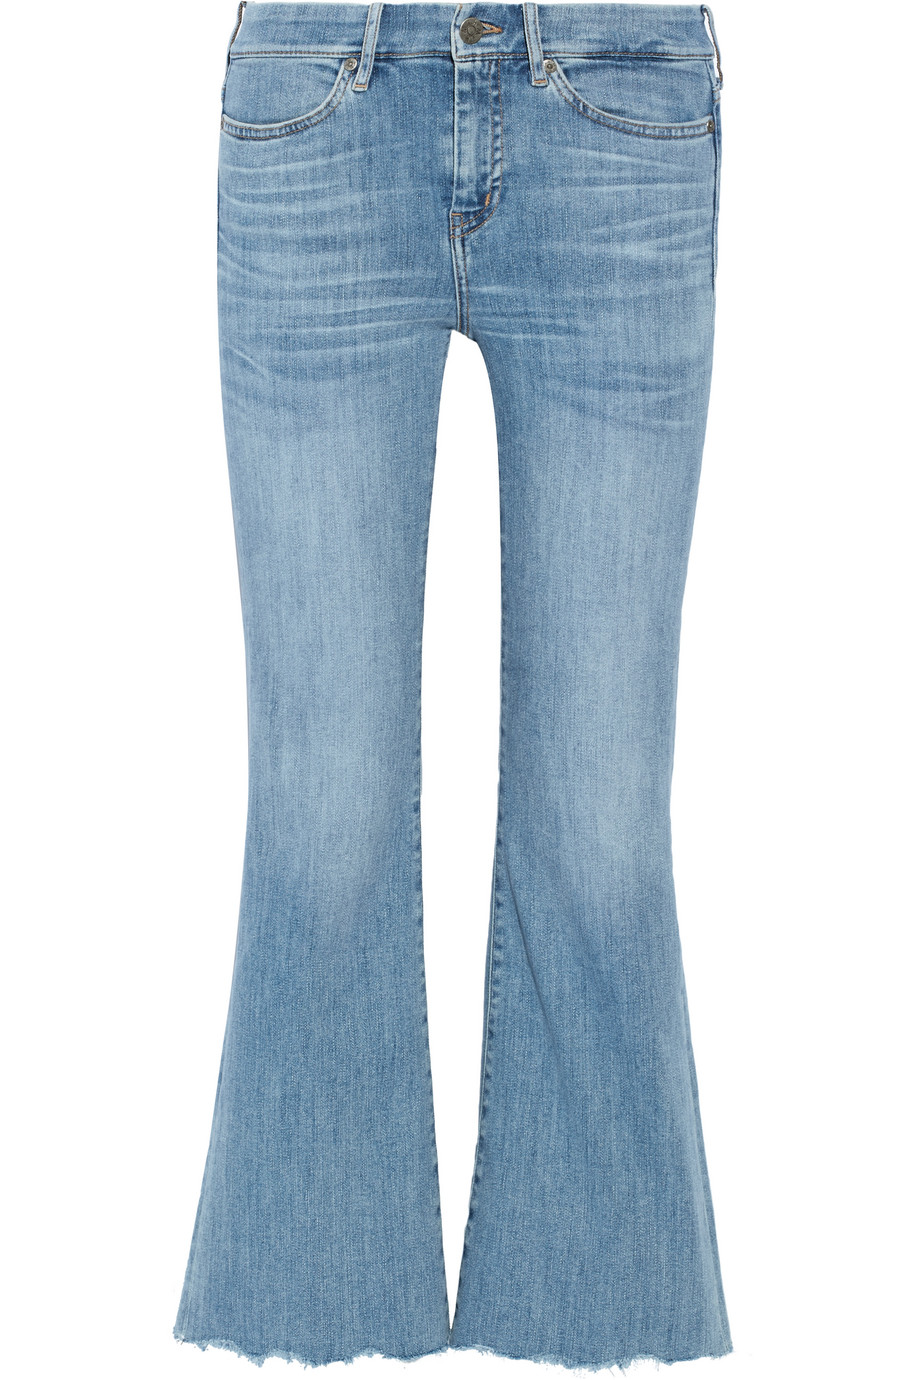 Mih Jeans Lou Cropped High-Rise Flared Jeans, Light Denim, Women's, Size: 26